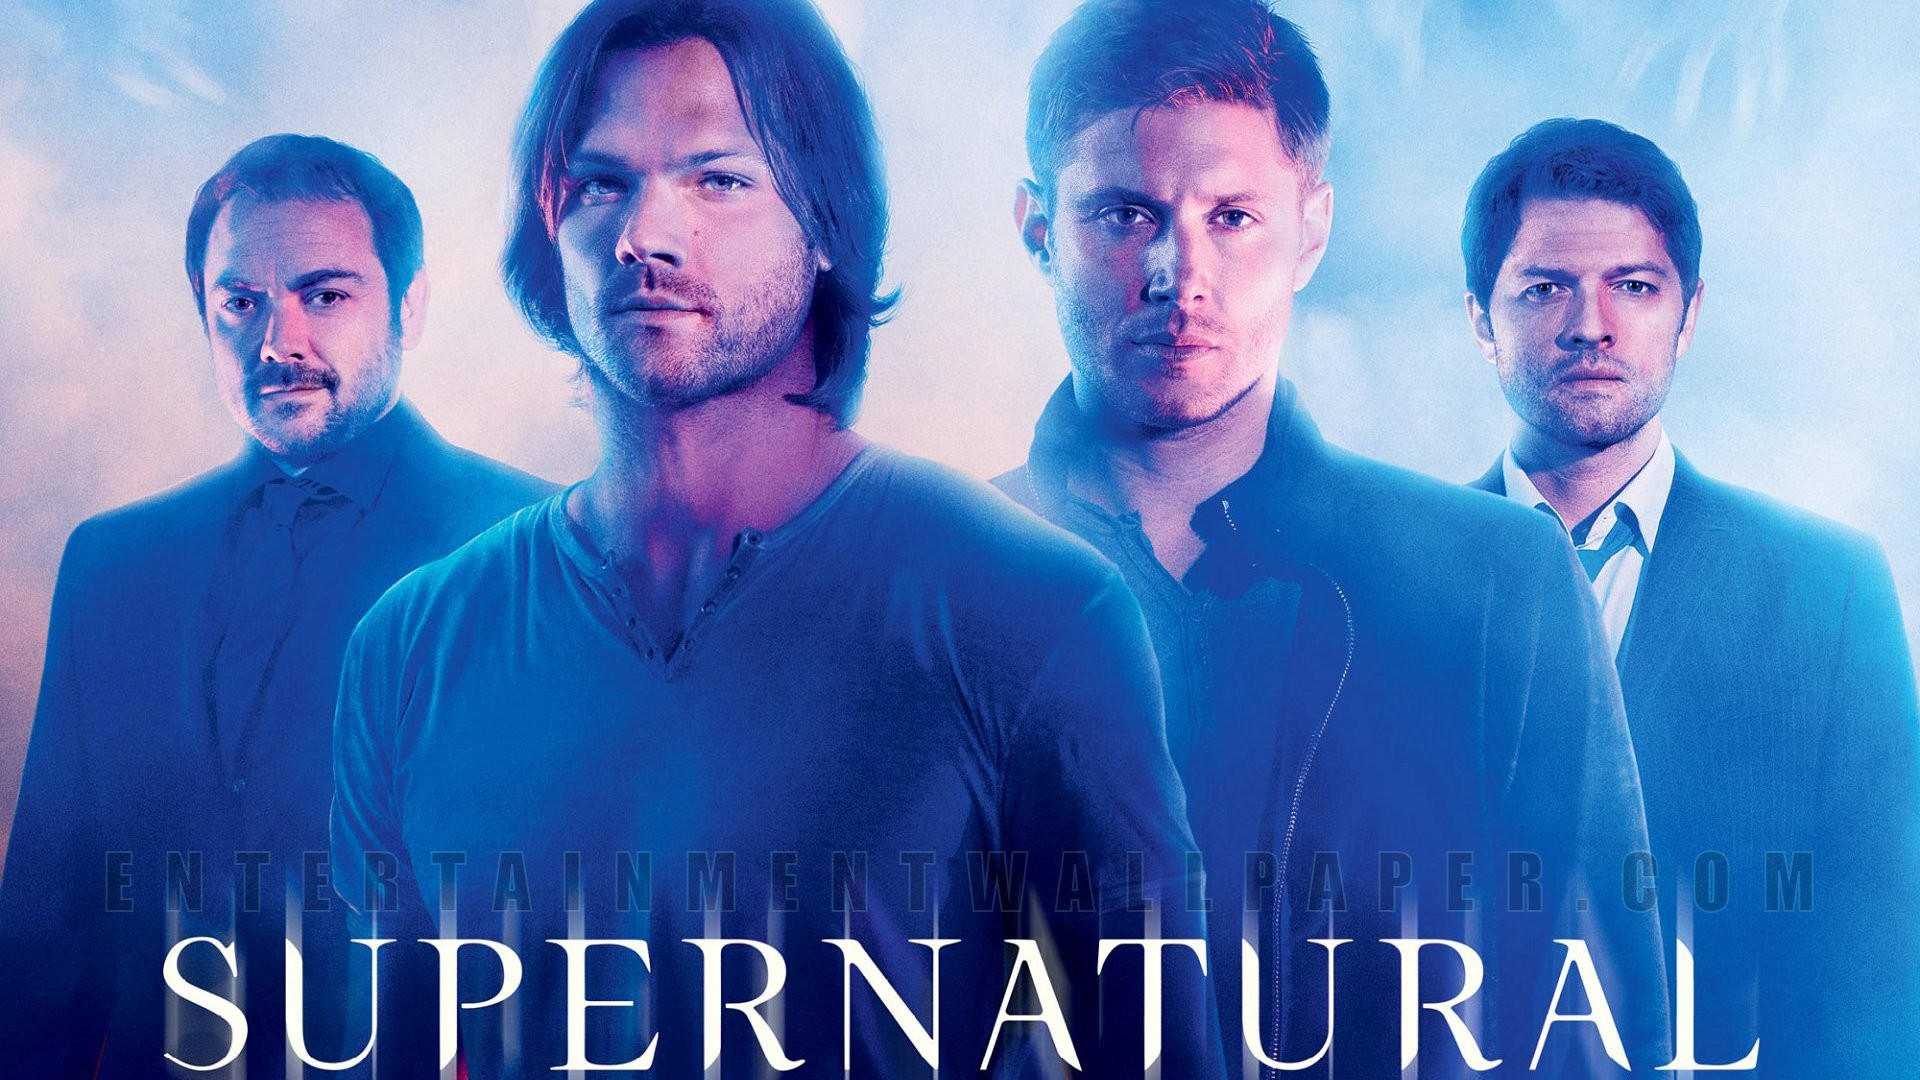 1920x1080 Background Supernatural wallpaper HD free download.